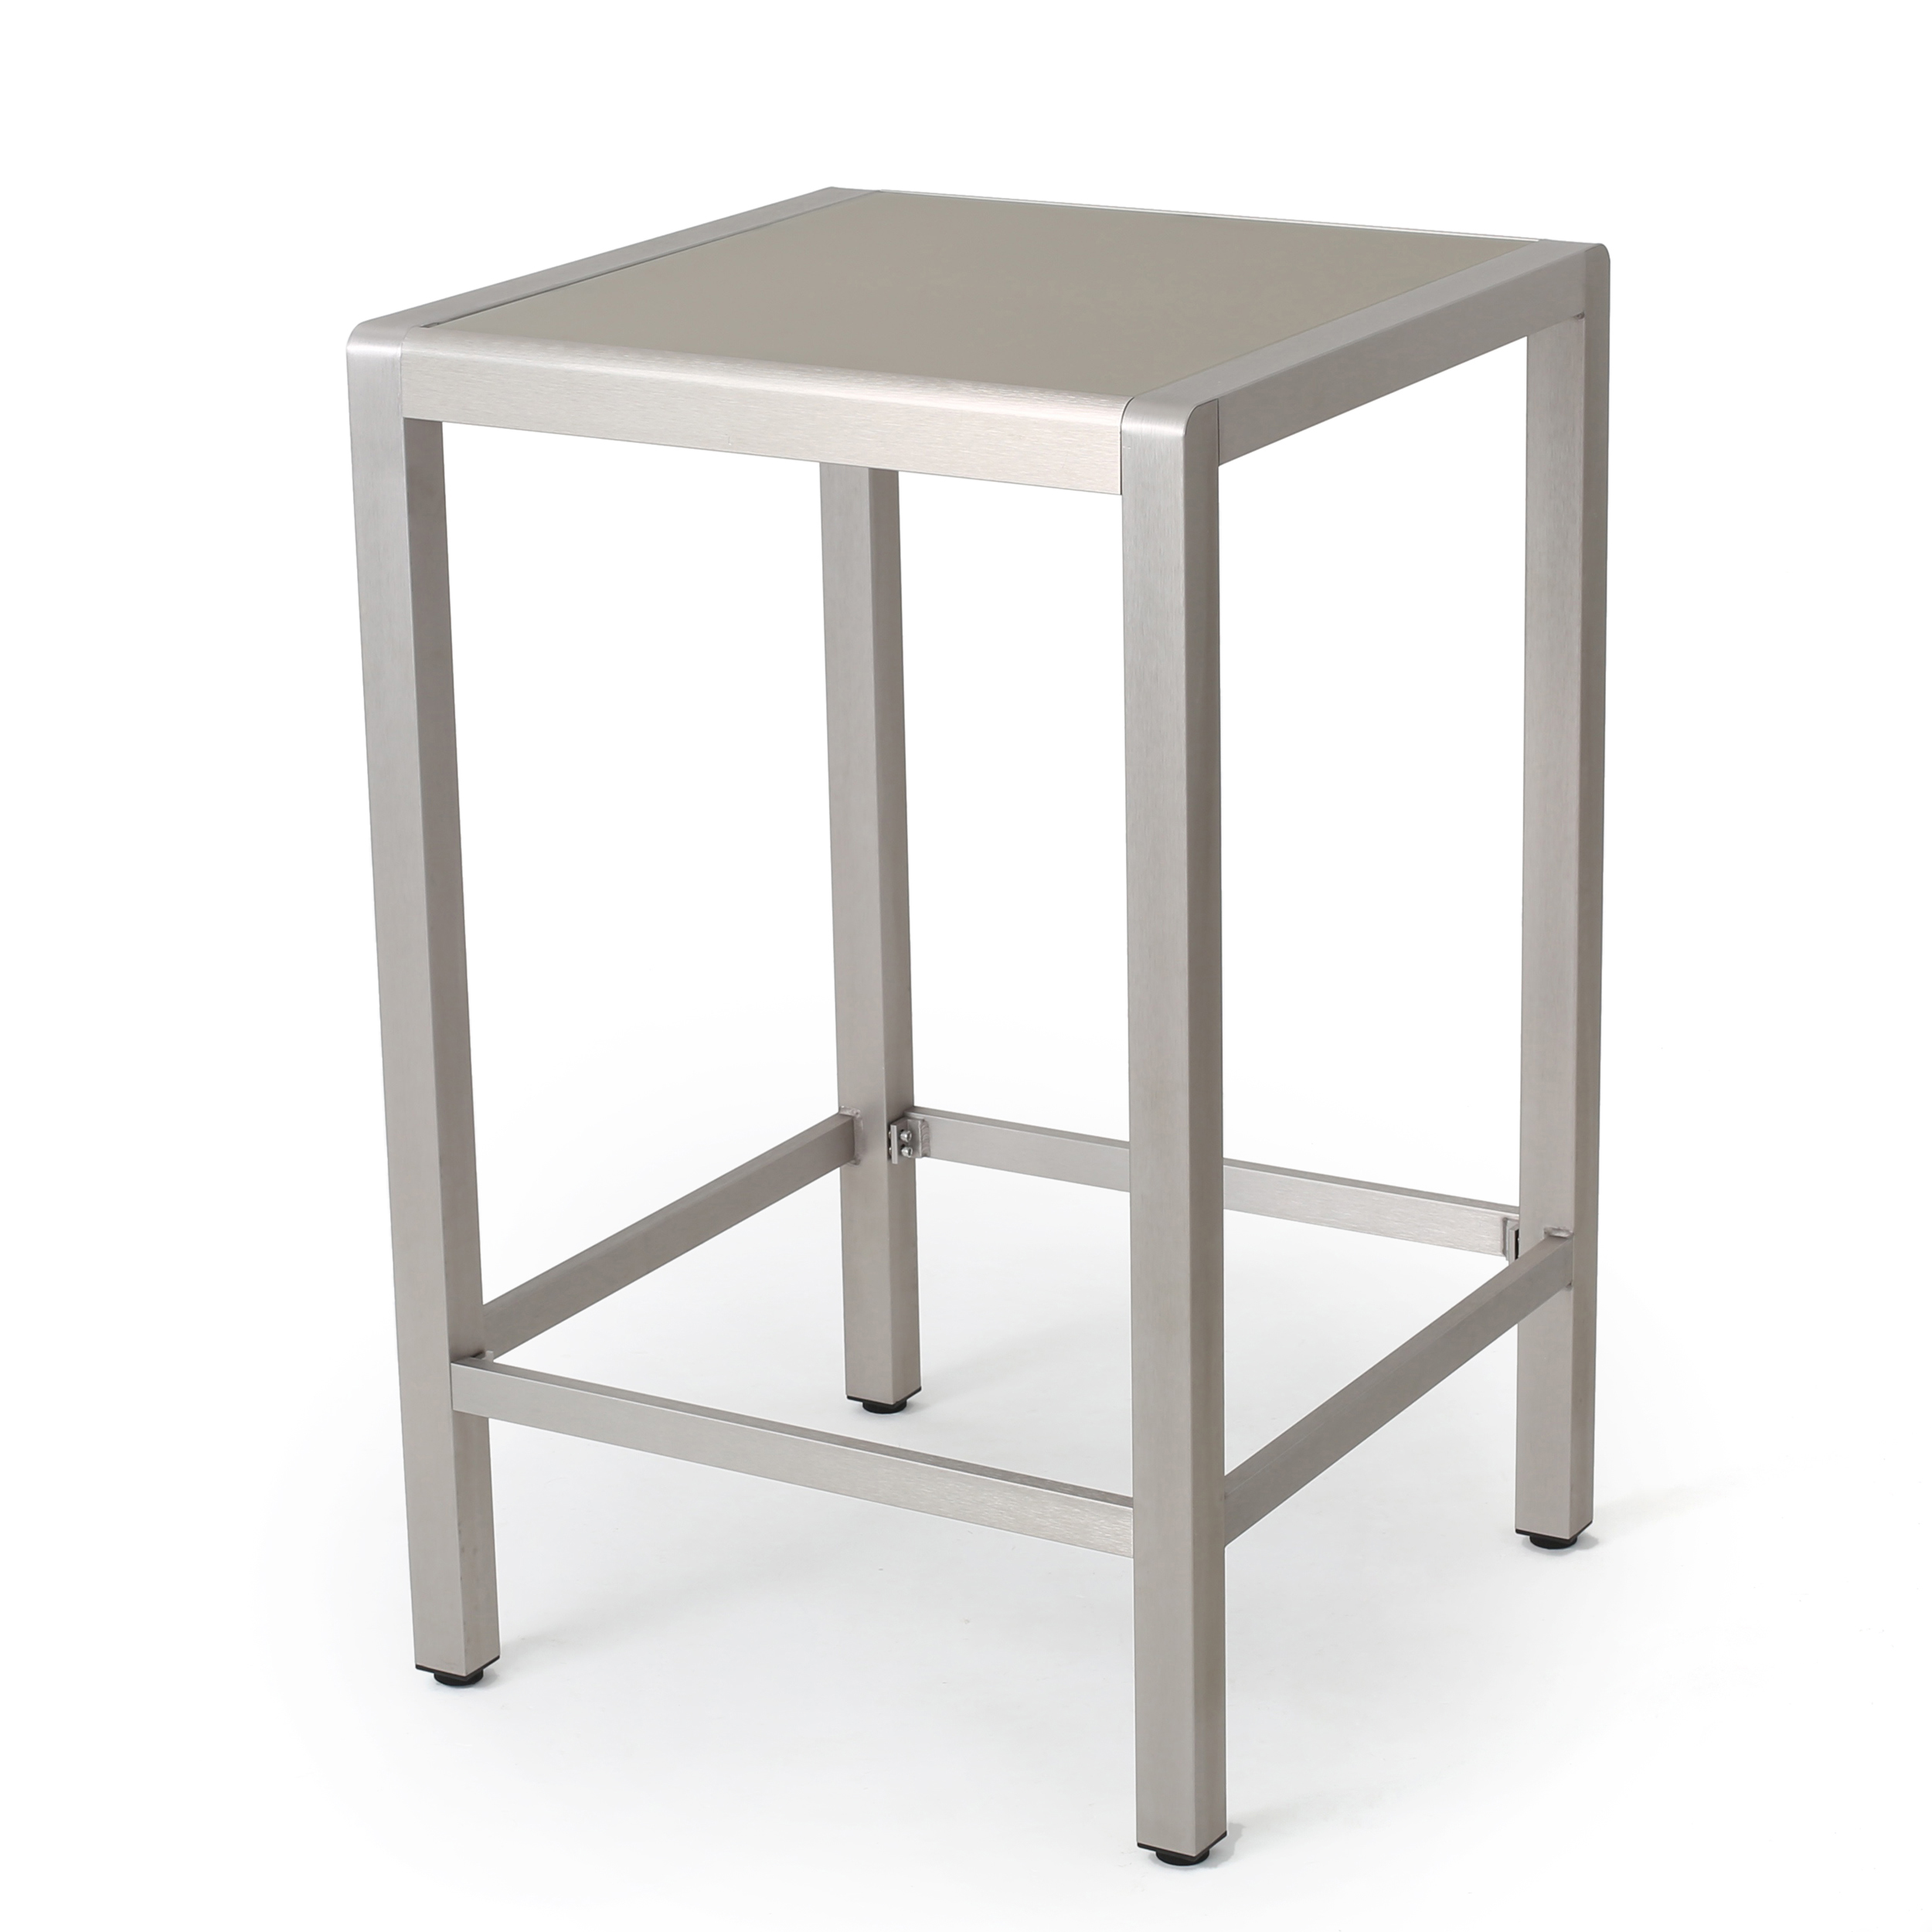 Capral Outdoor Alumnimum Bar Table with Glass Top, Grey